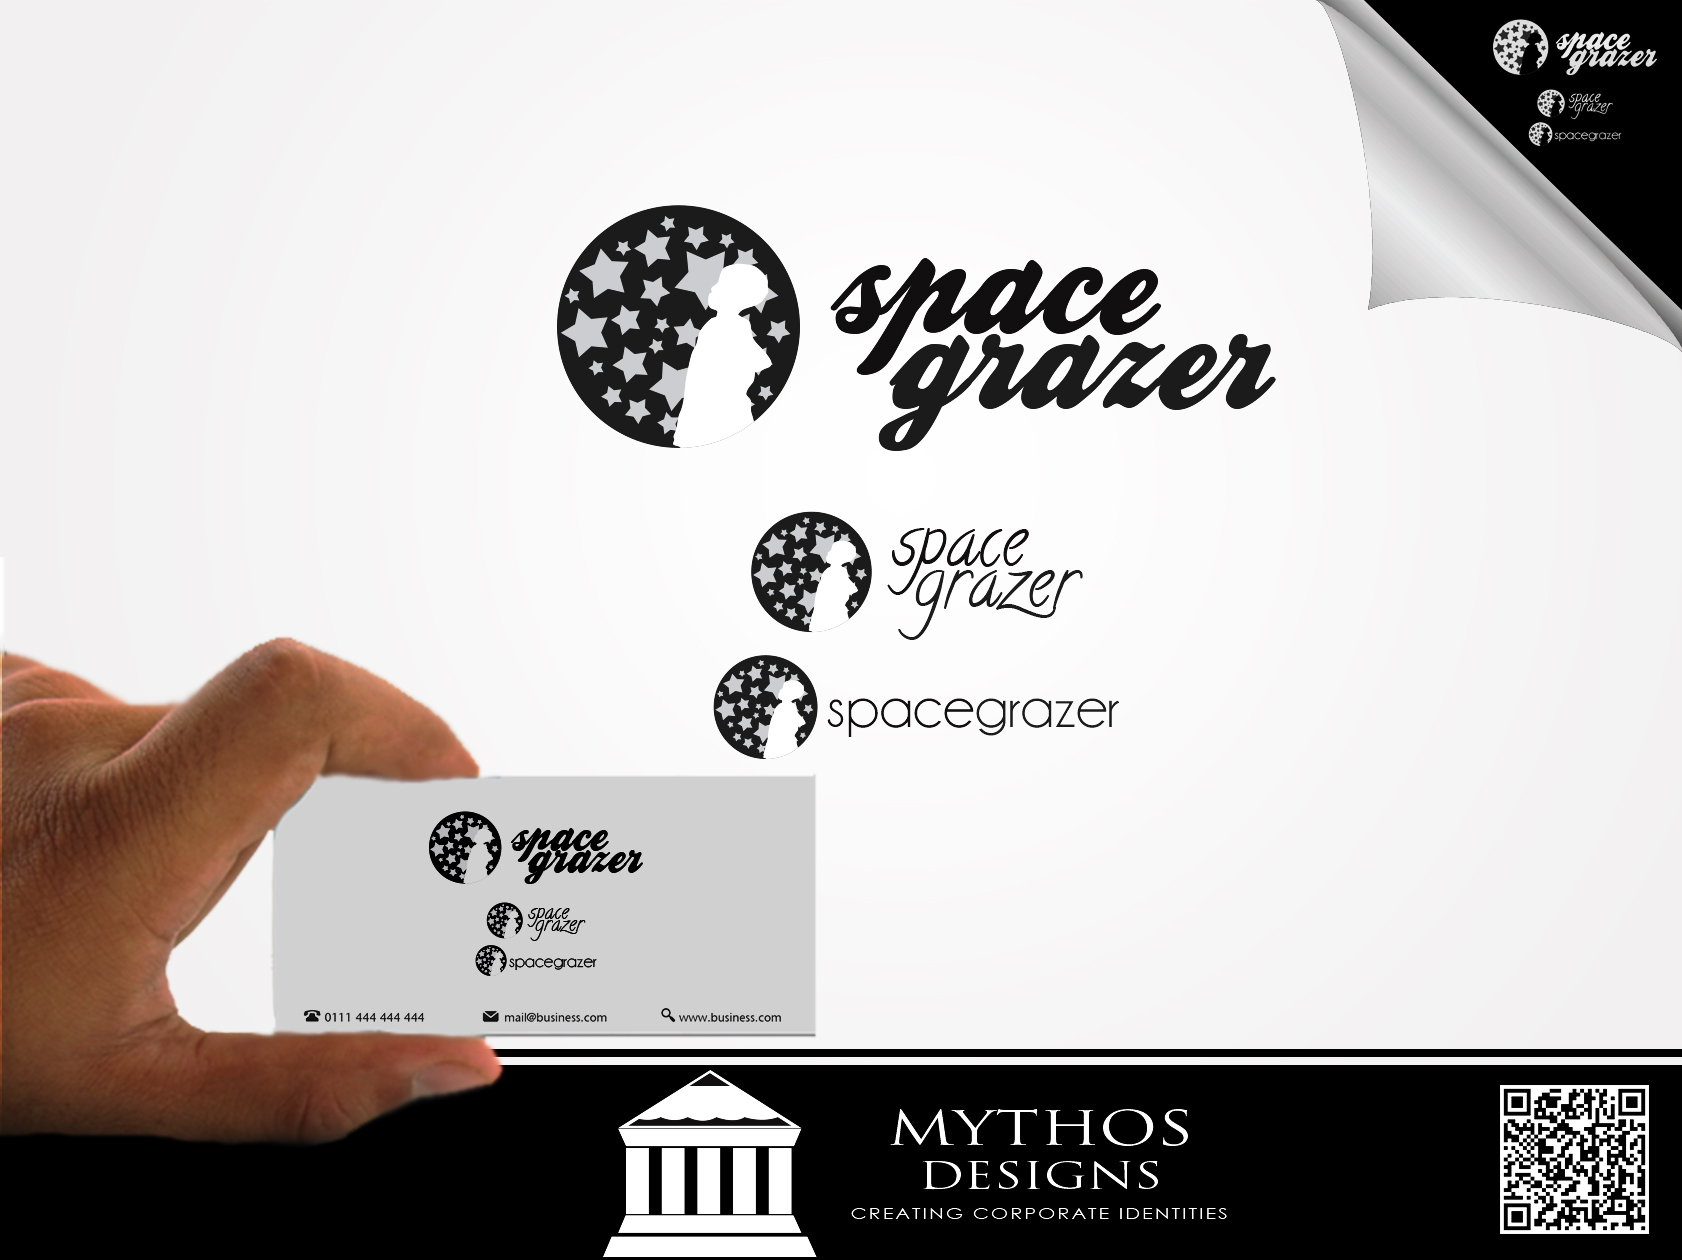 Logo Design by Mythos Designs - Entry No. 28 in the Logo Design Contest Fun Logo Design for Spacegrazer.